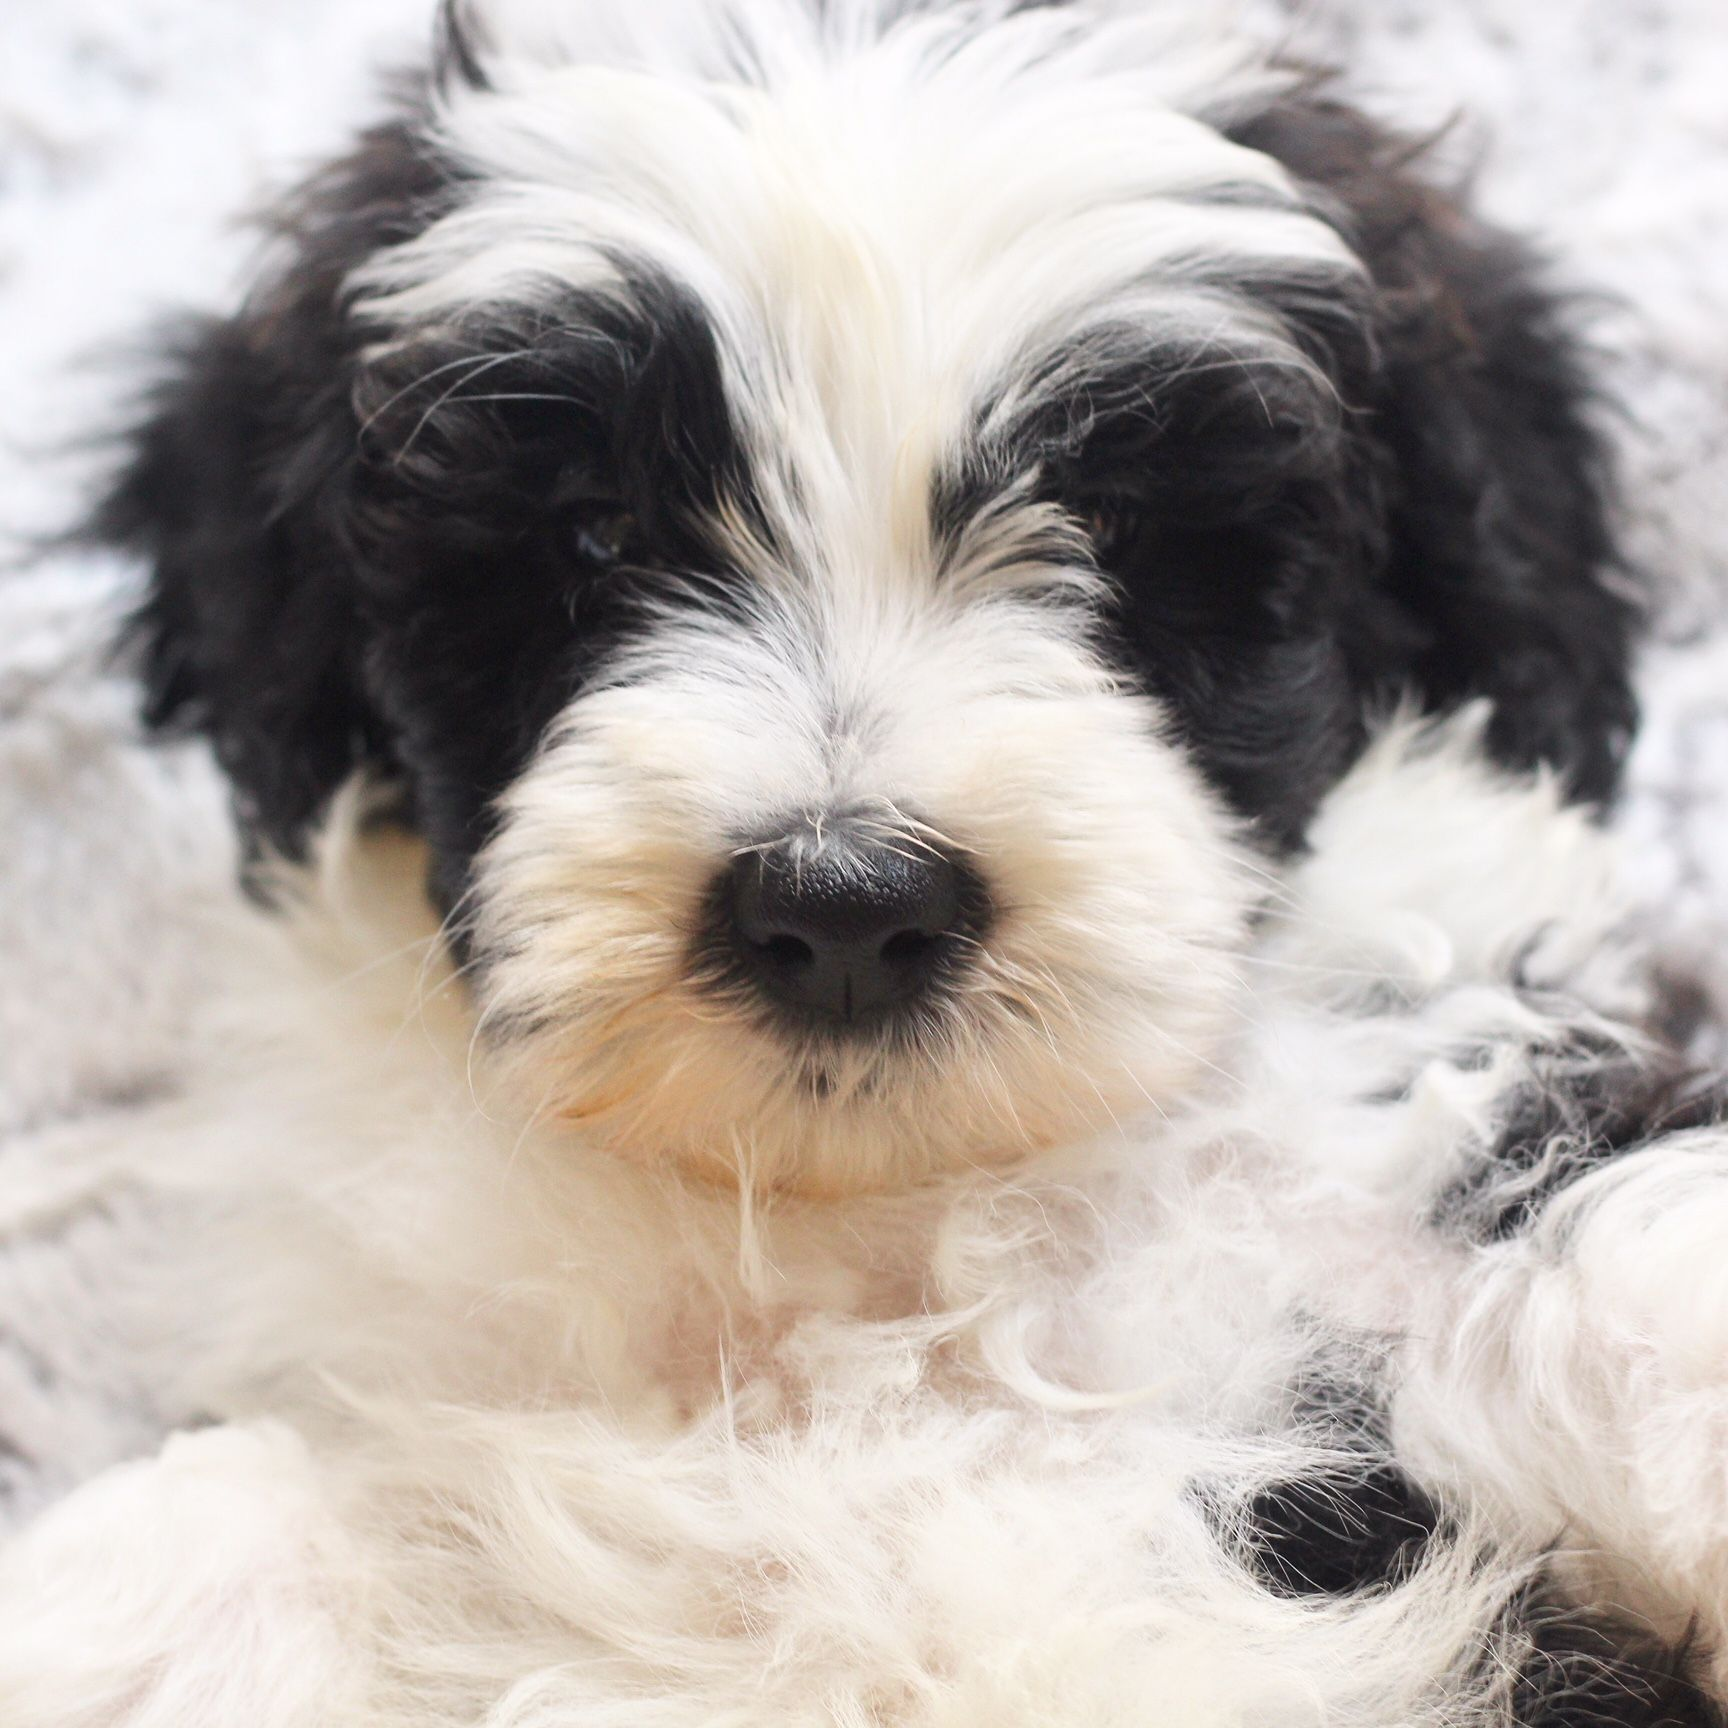 SHEEPADOODLE PUPPY! Melt my heart! Native Doodles (With